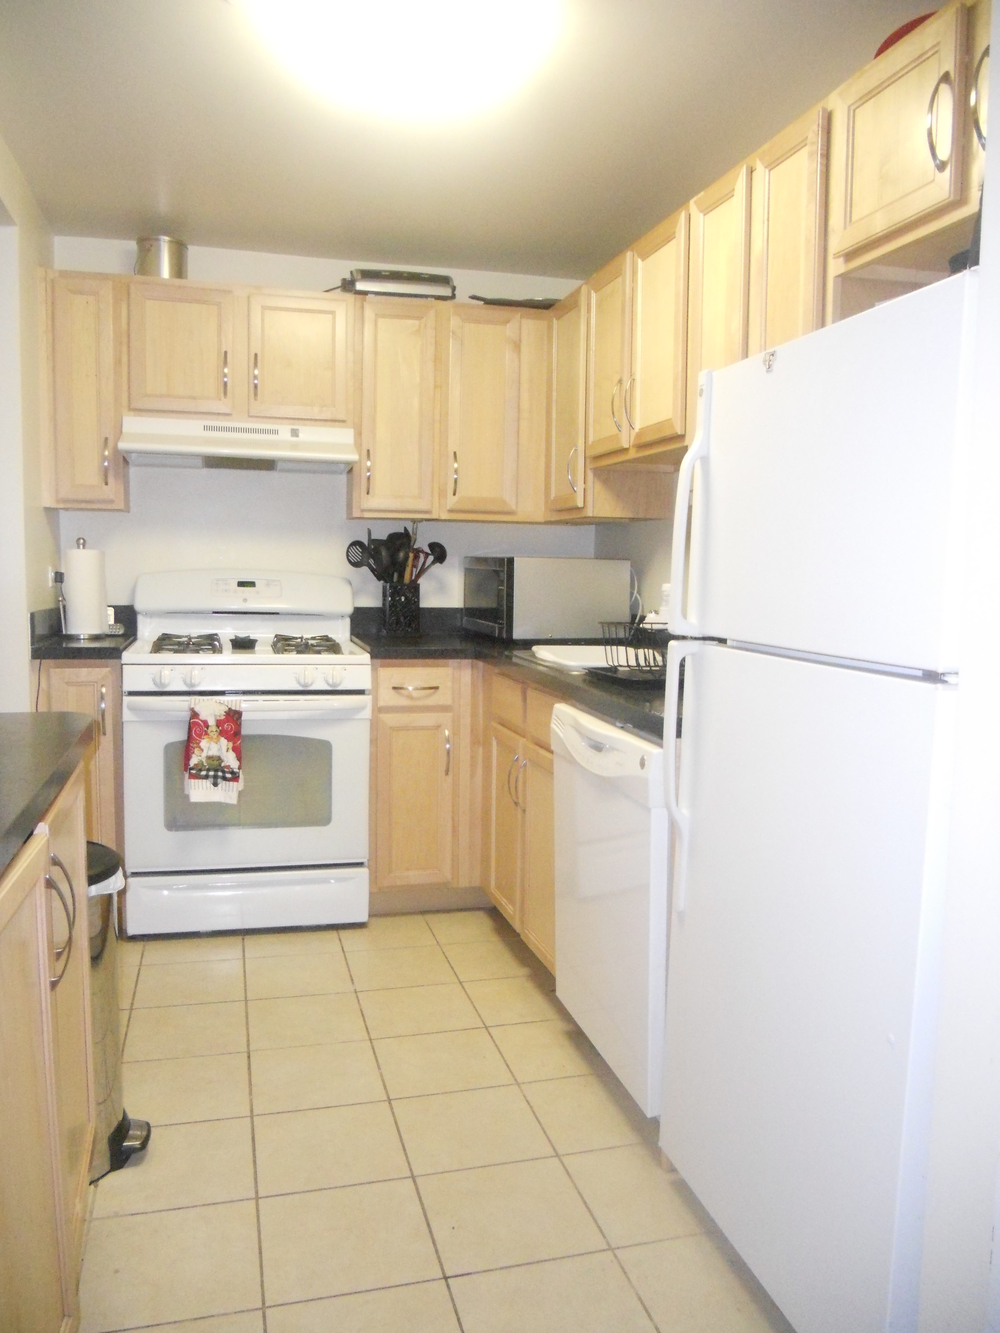 Apt Kitchen Sale Condo 156th St 3rd Avenue Melrose Bronx Ny